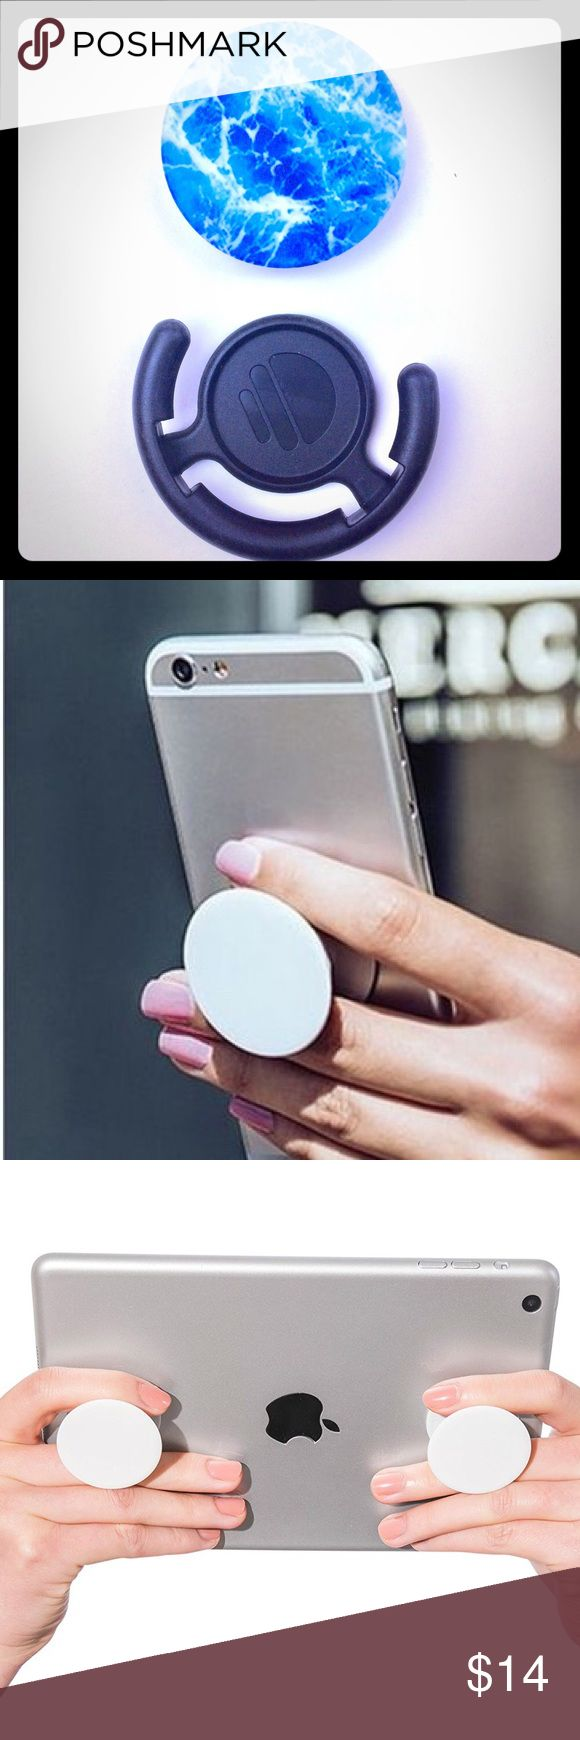 PopSocket Better holding for your phone/tablet, or mount it on your car dash, at home or at work. You will get a mount for free when you purchase a pop socket. Accessories